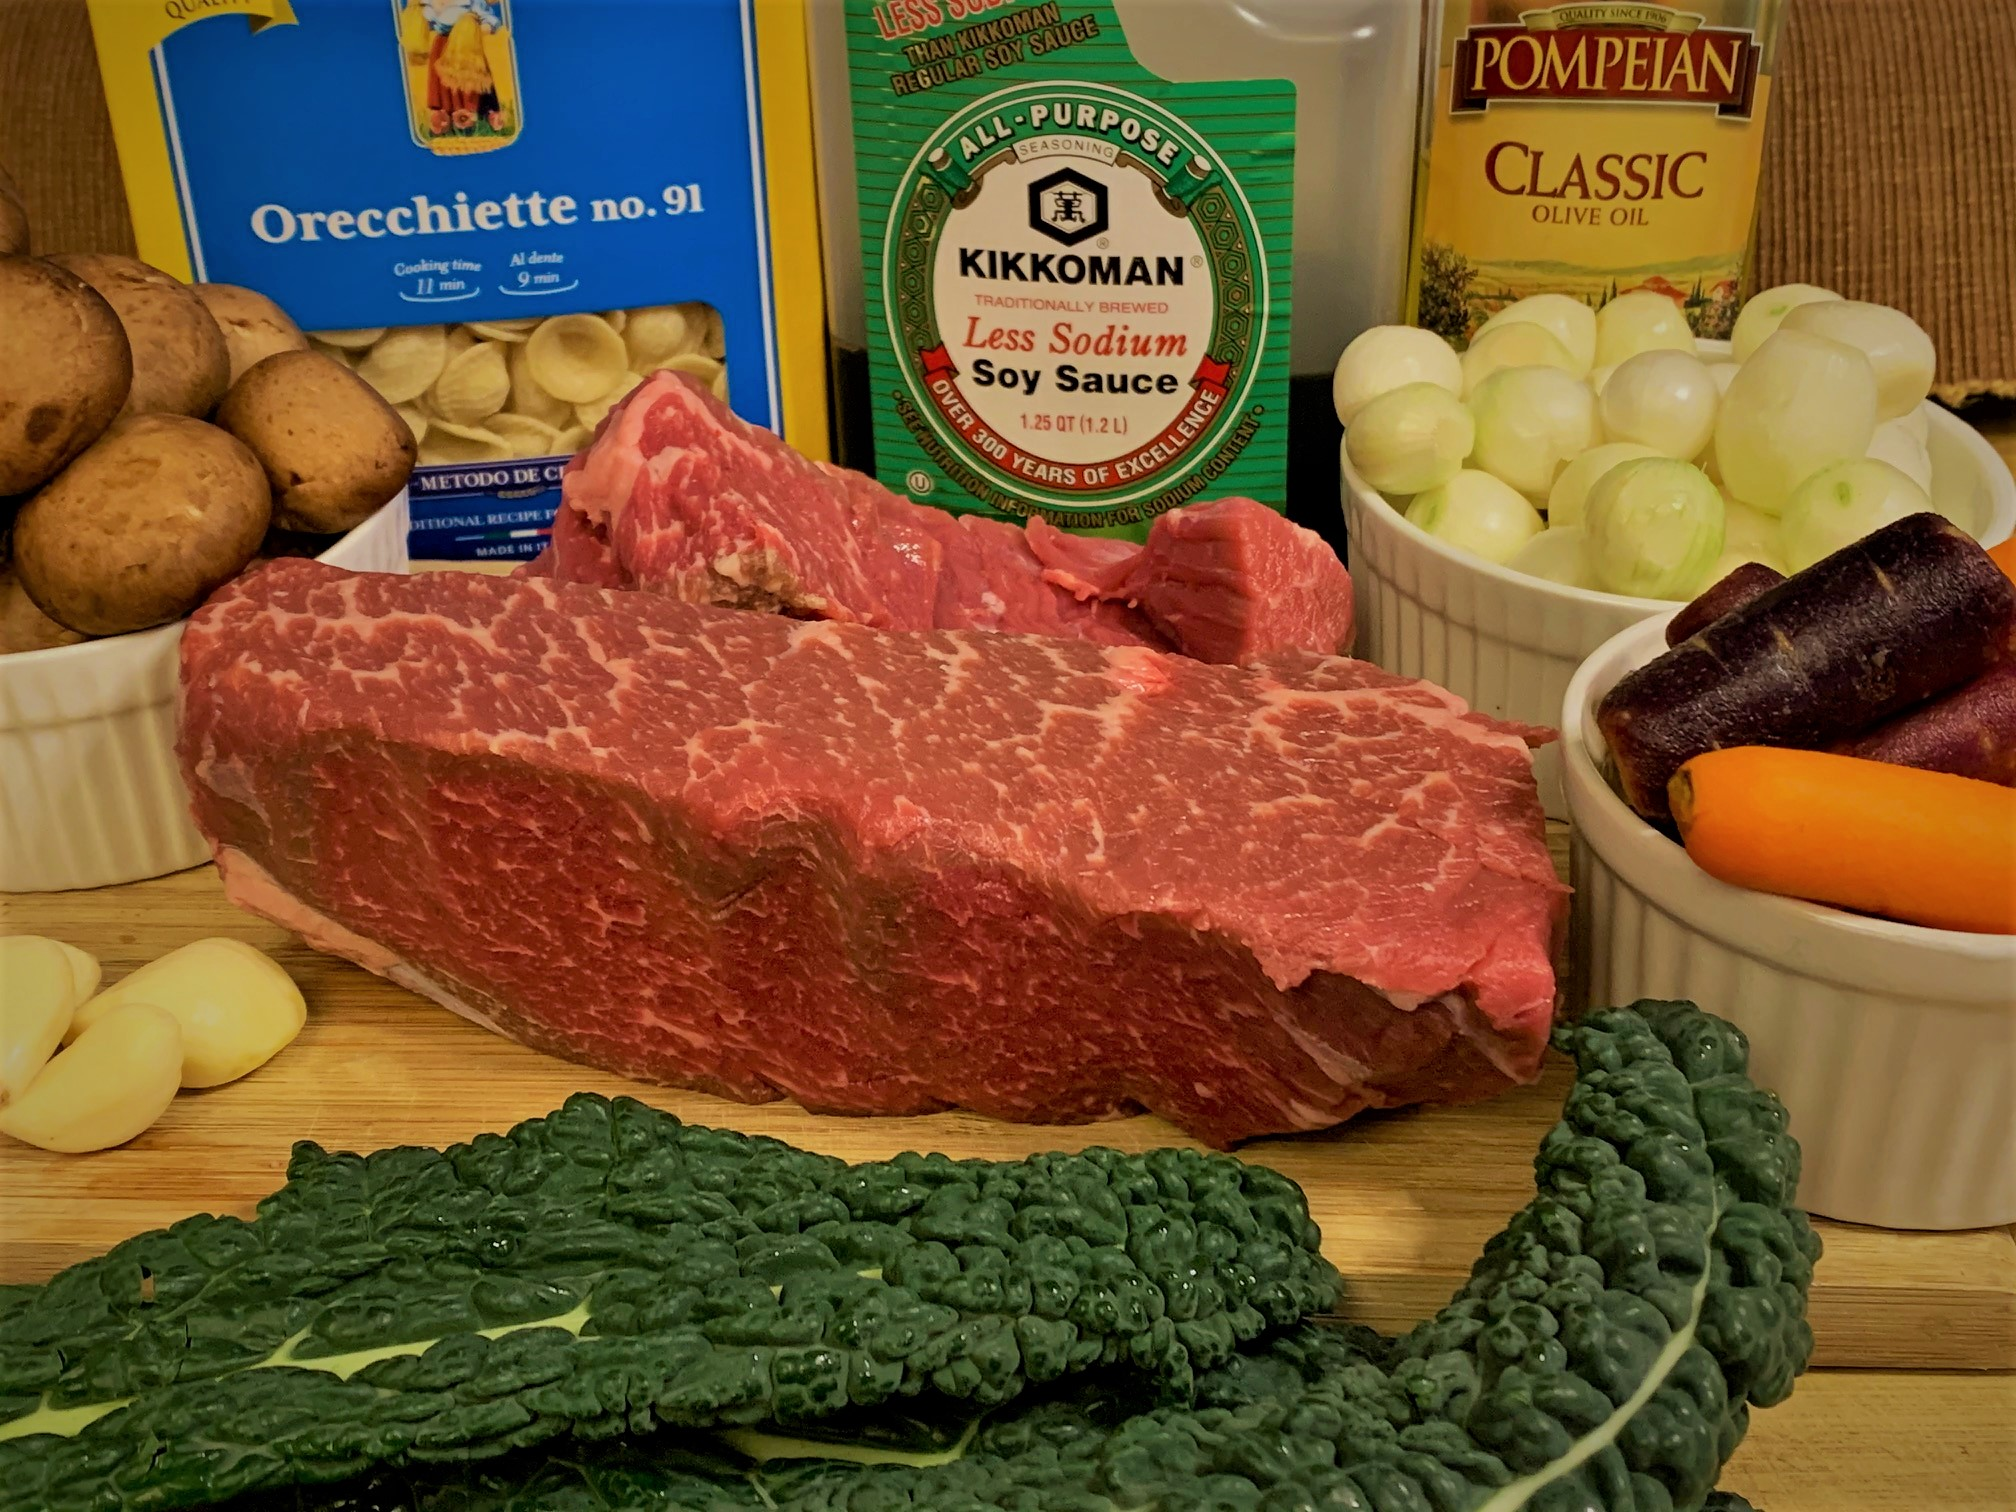 The ingredients for our Braised Shaak Roast from Docking Bay 7 Food & Cargo